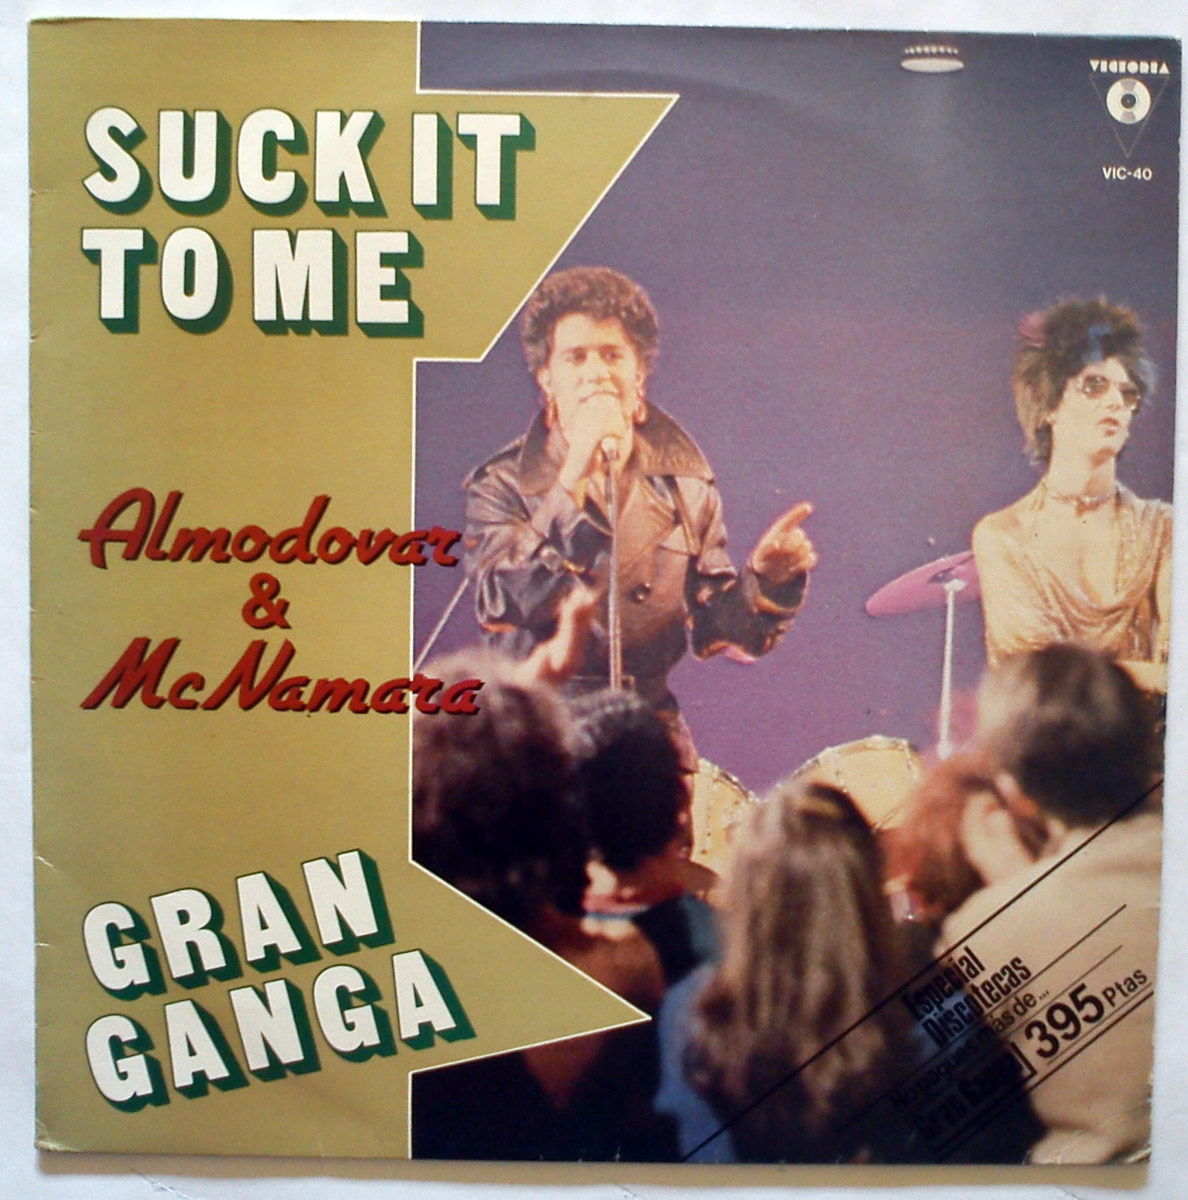 Almodovar & Mc Namara suck it to me / gran ganga (cantado) / gran ganga (instrum)